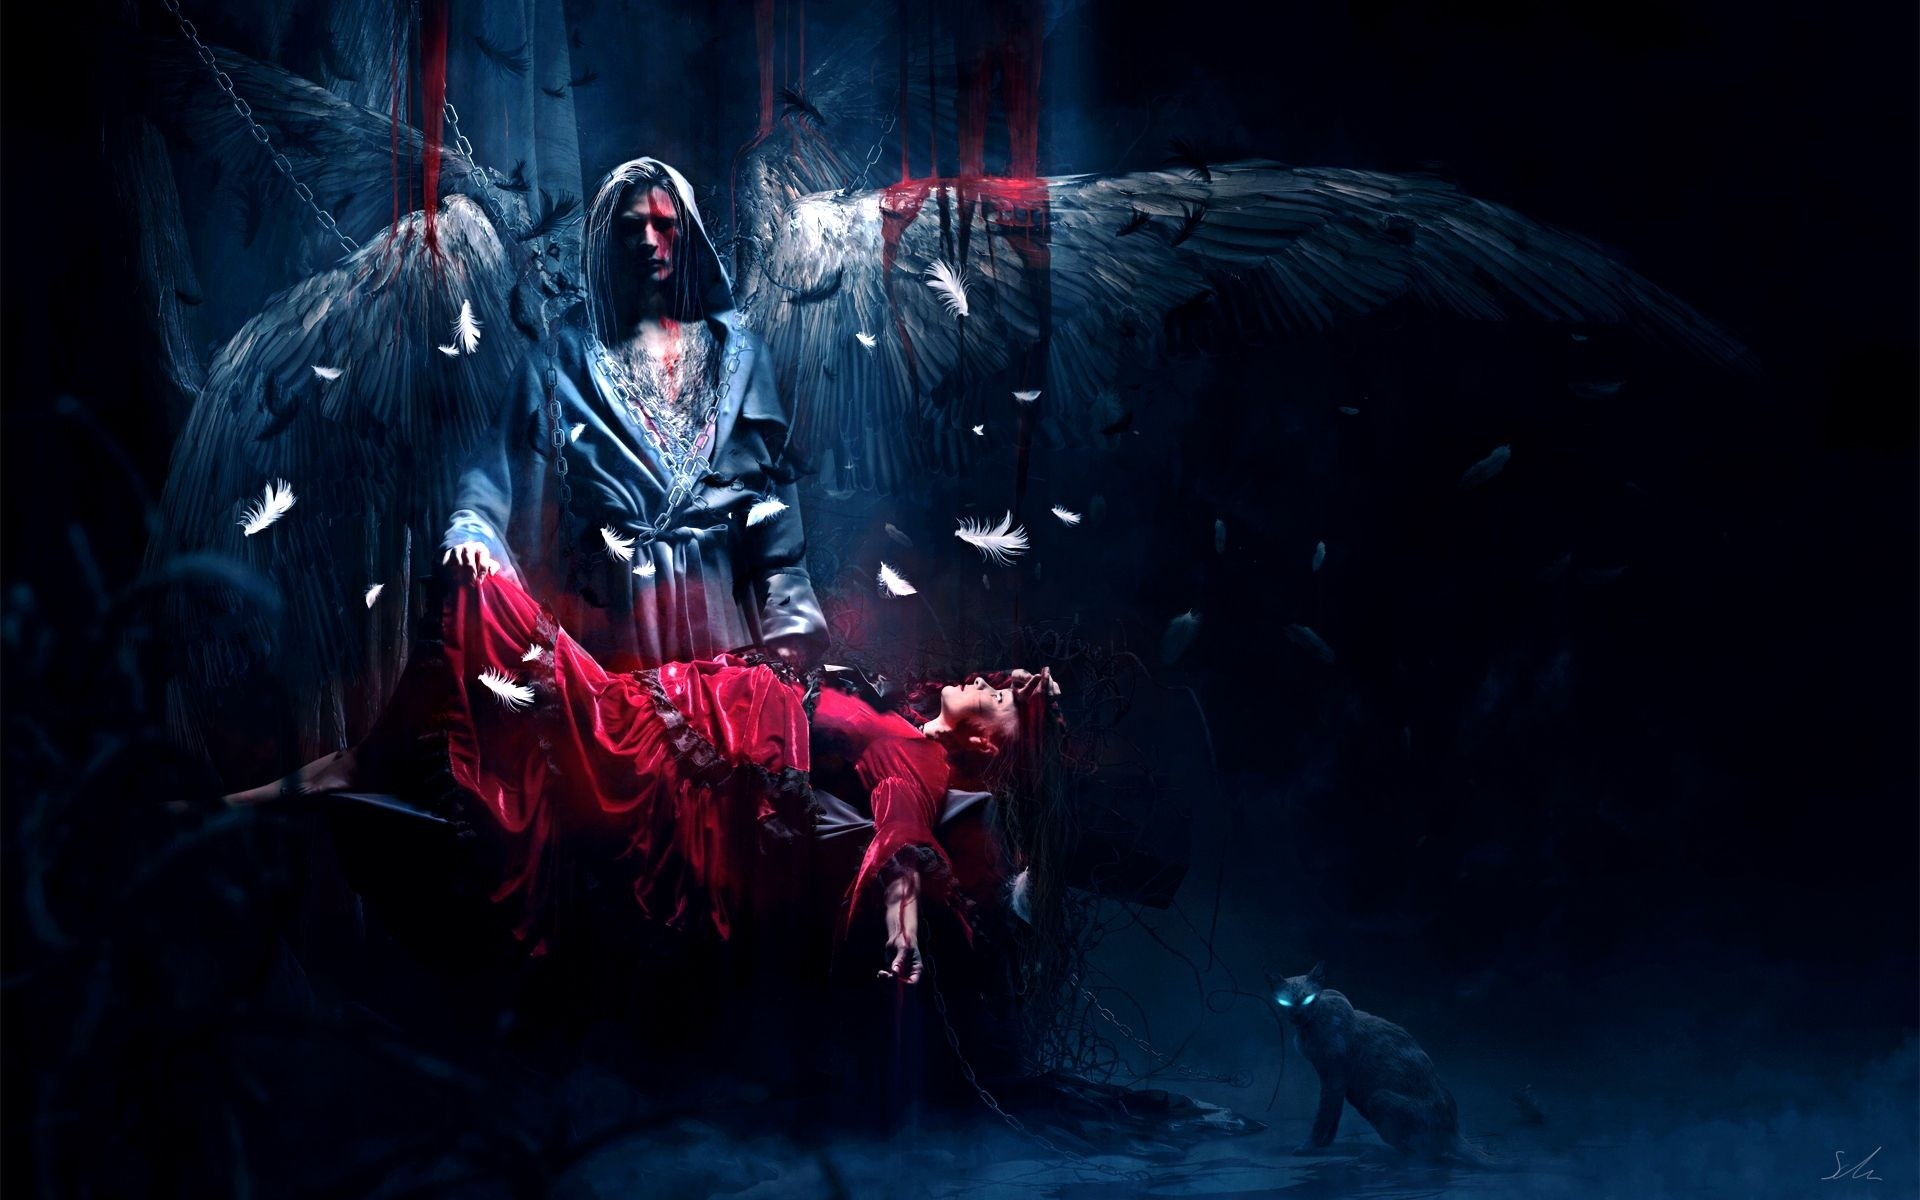 Wallpaper Angel, Victim, Wings, Night, Cat, Eyes, Feathers HD, Picture,  Image